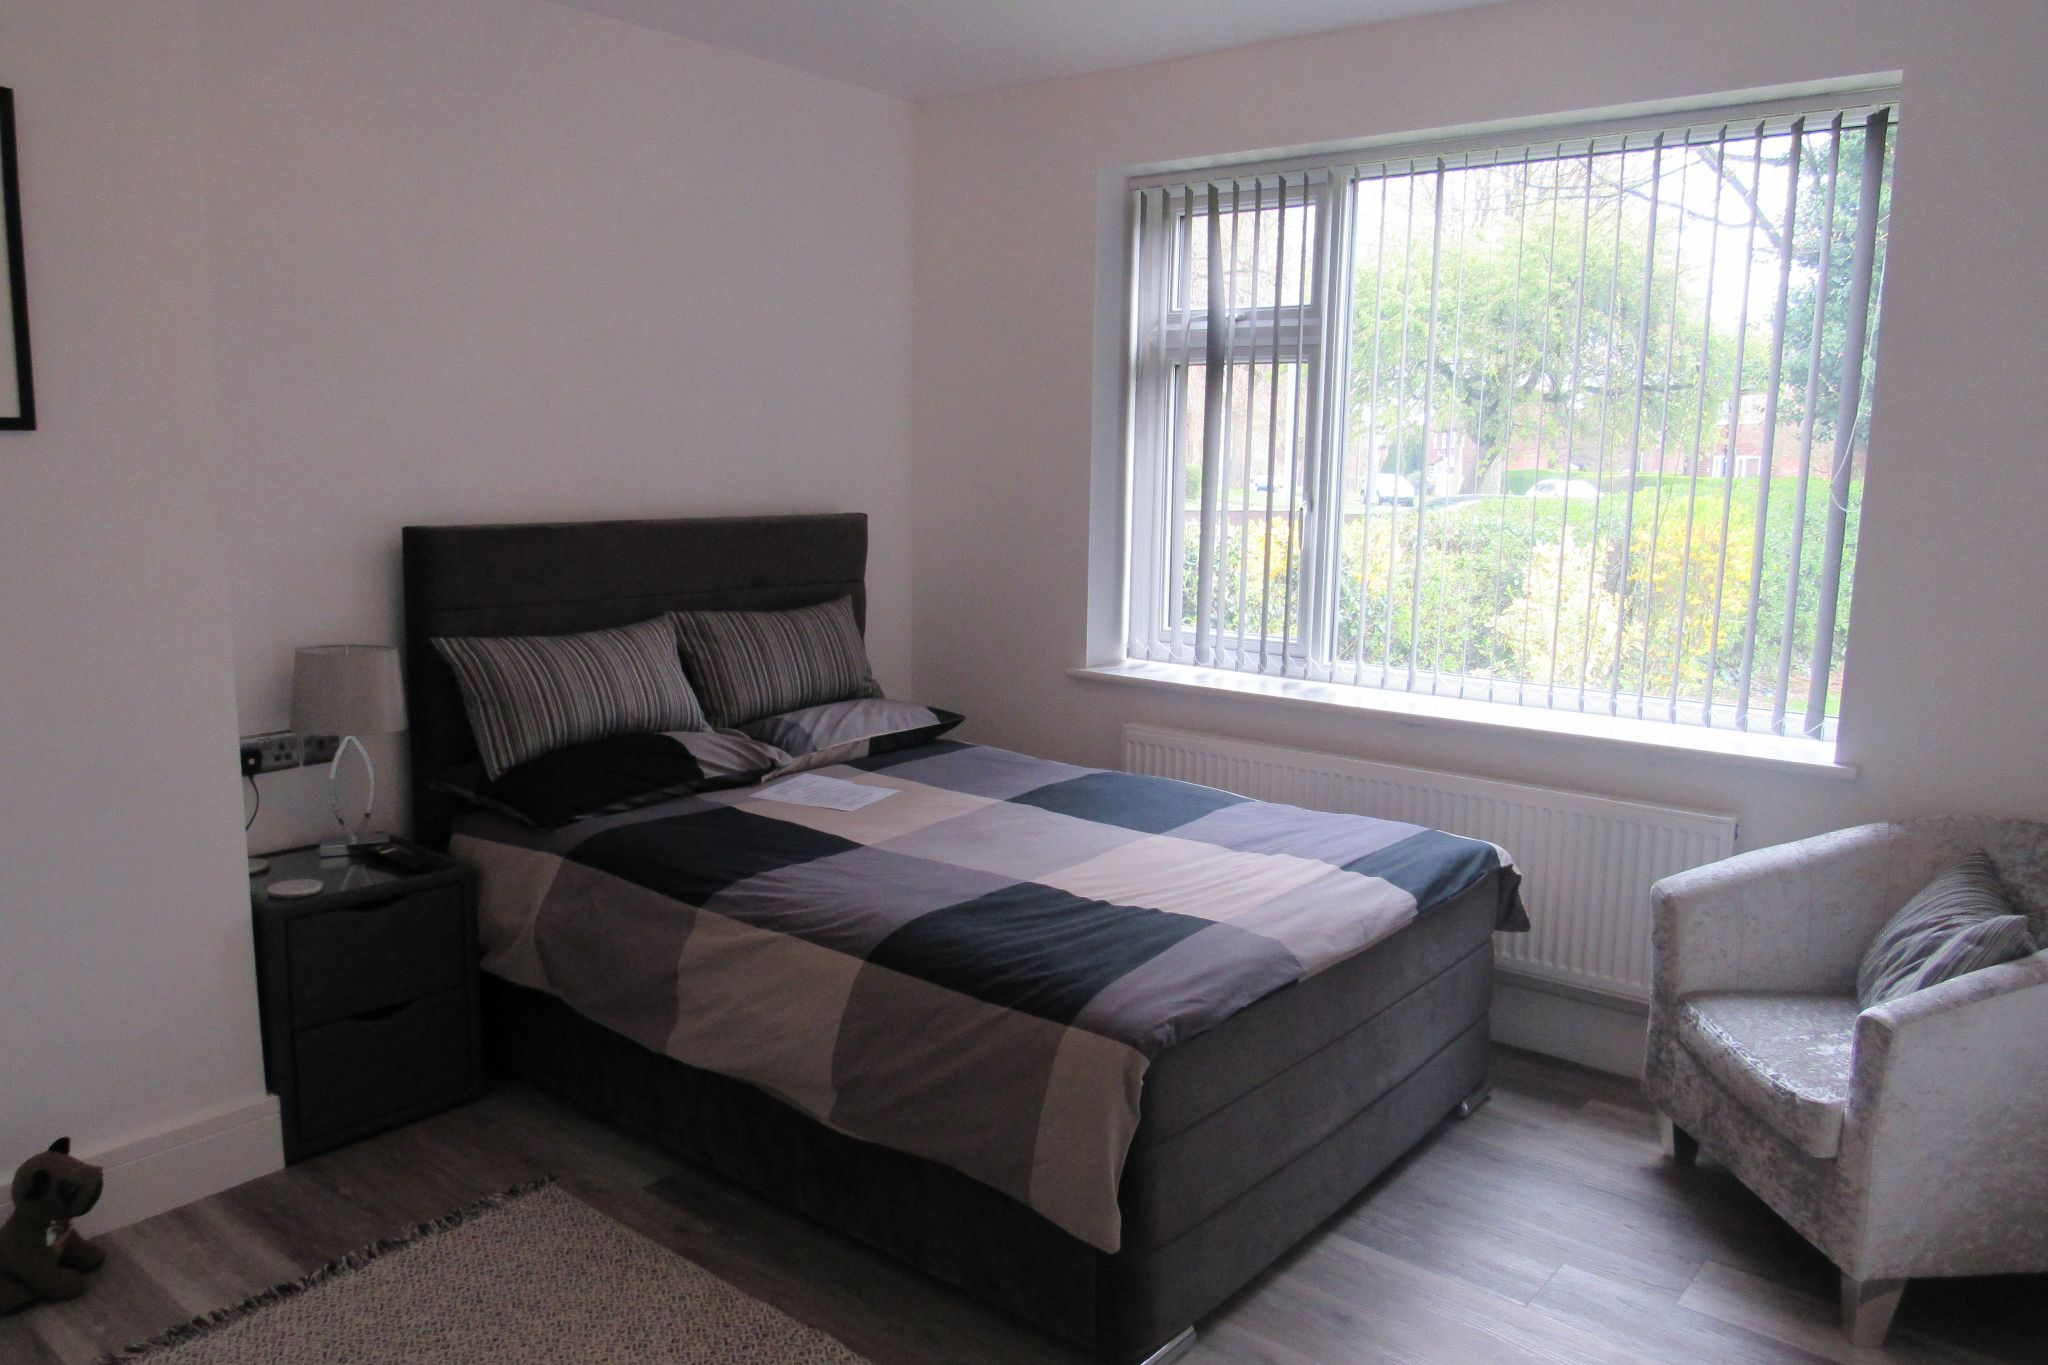 4 bedroom end terraced house SSTC in Manchester - Photograph 7.